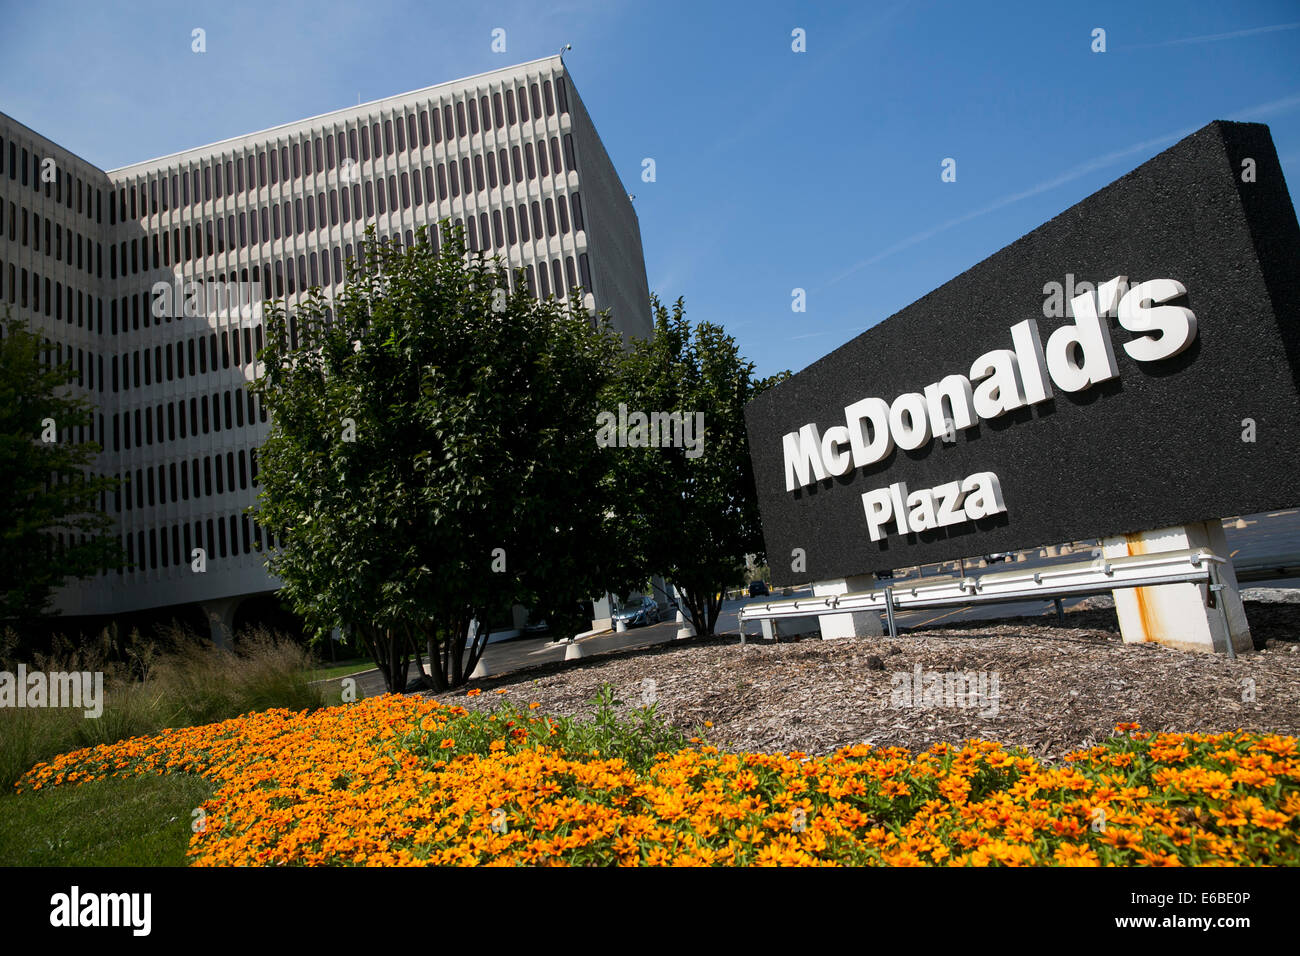 The headquarters of mcdonald 39 s in oak brook illinois stock photo royalty free image 72781878 - Where is mcdonald s head office located ...